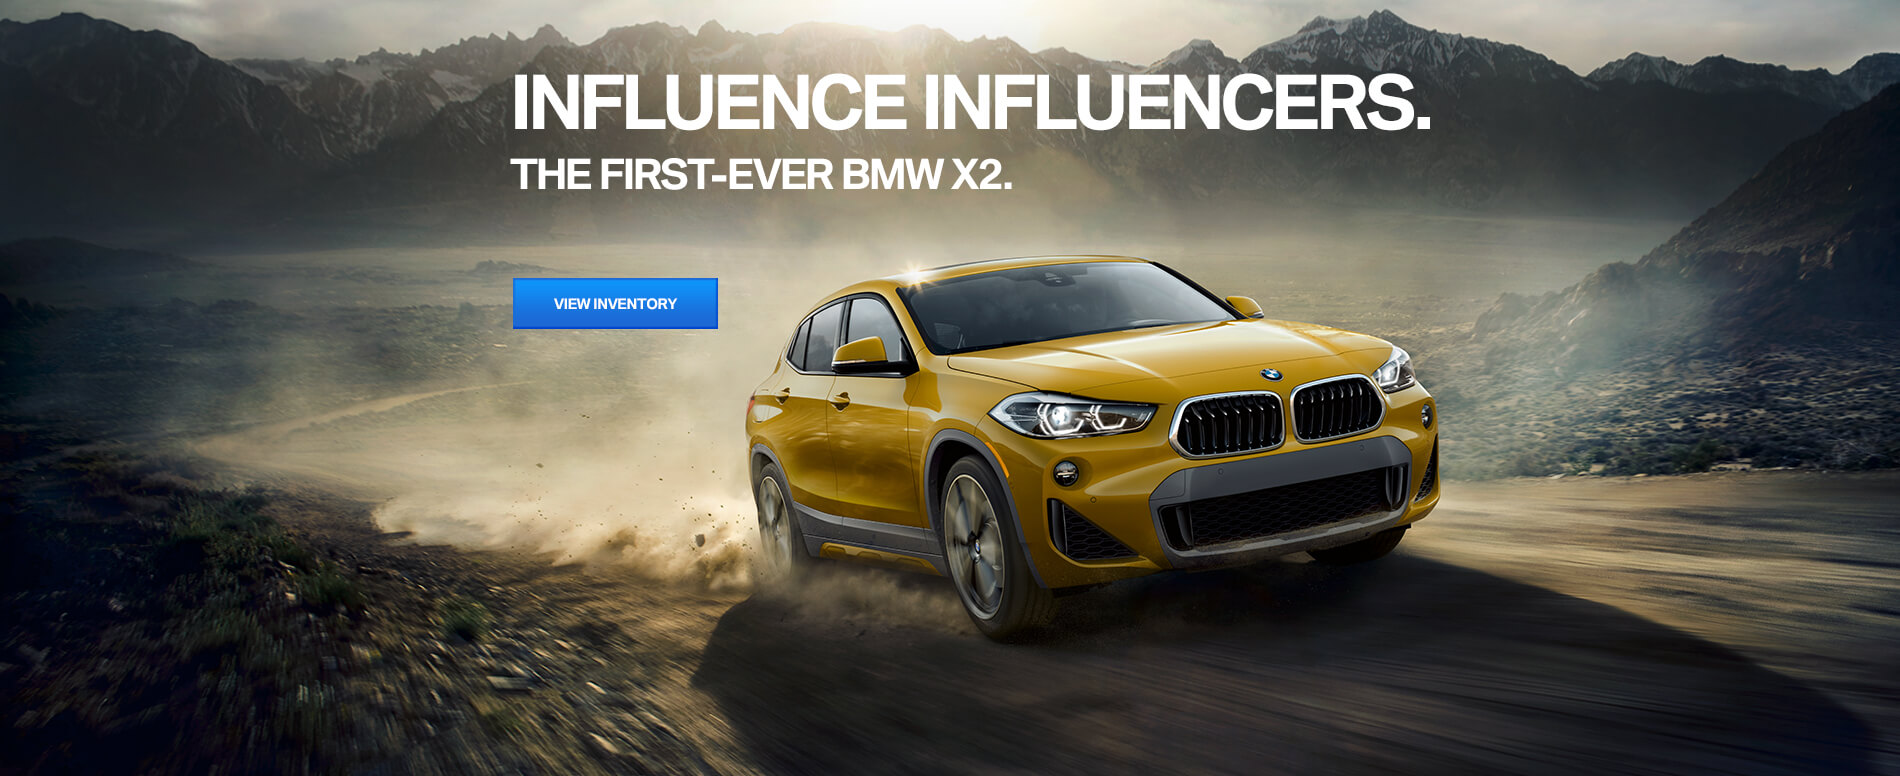 INFLUENCE INFLUENCERS.  THE FIRST-EVER BMW X2.